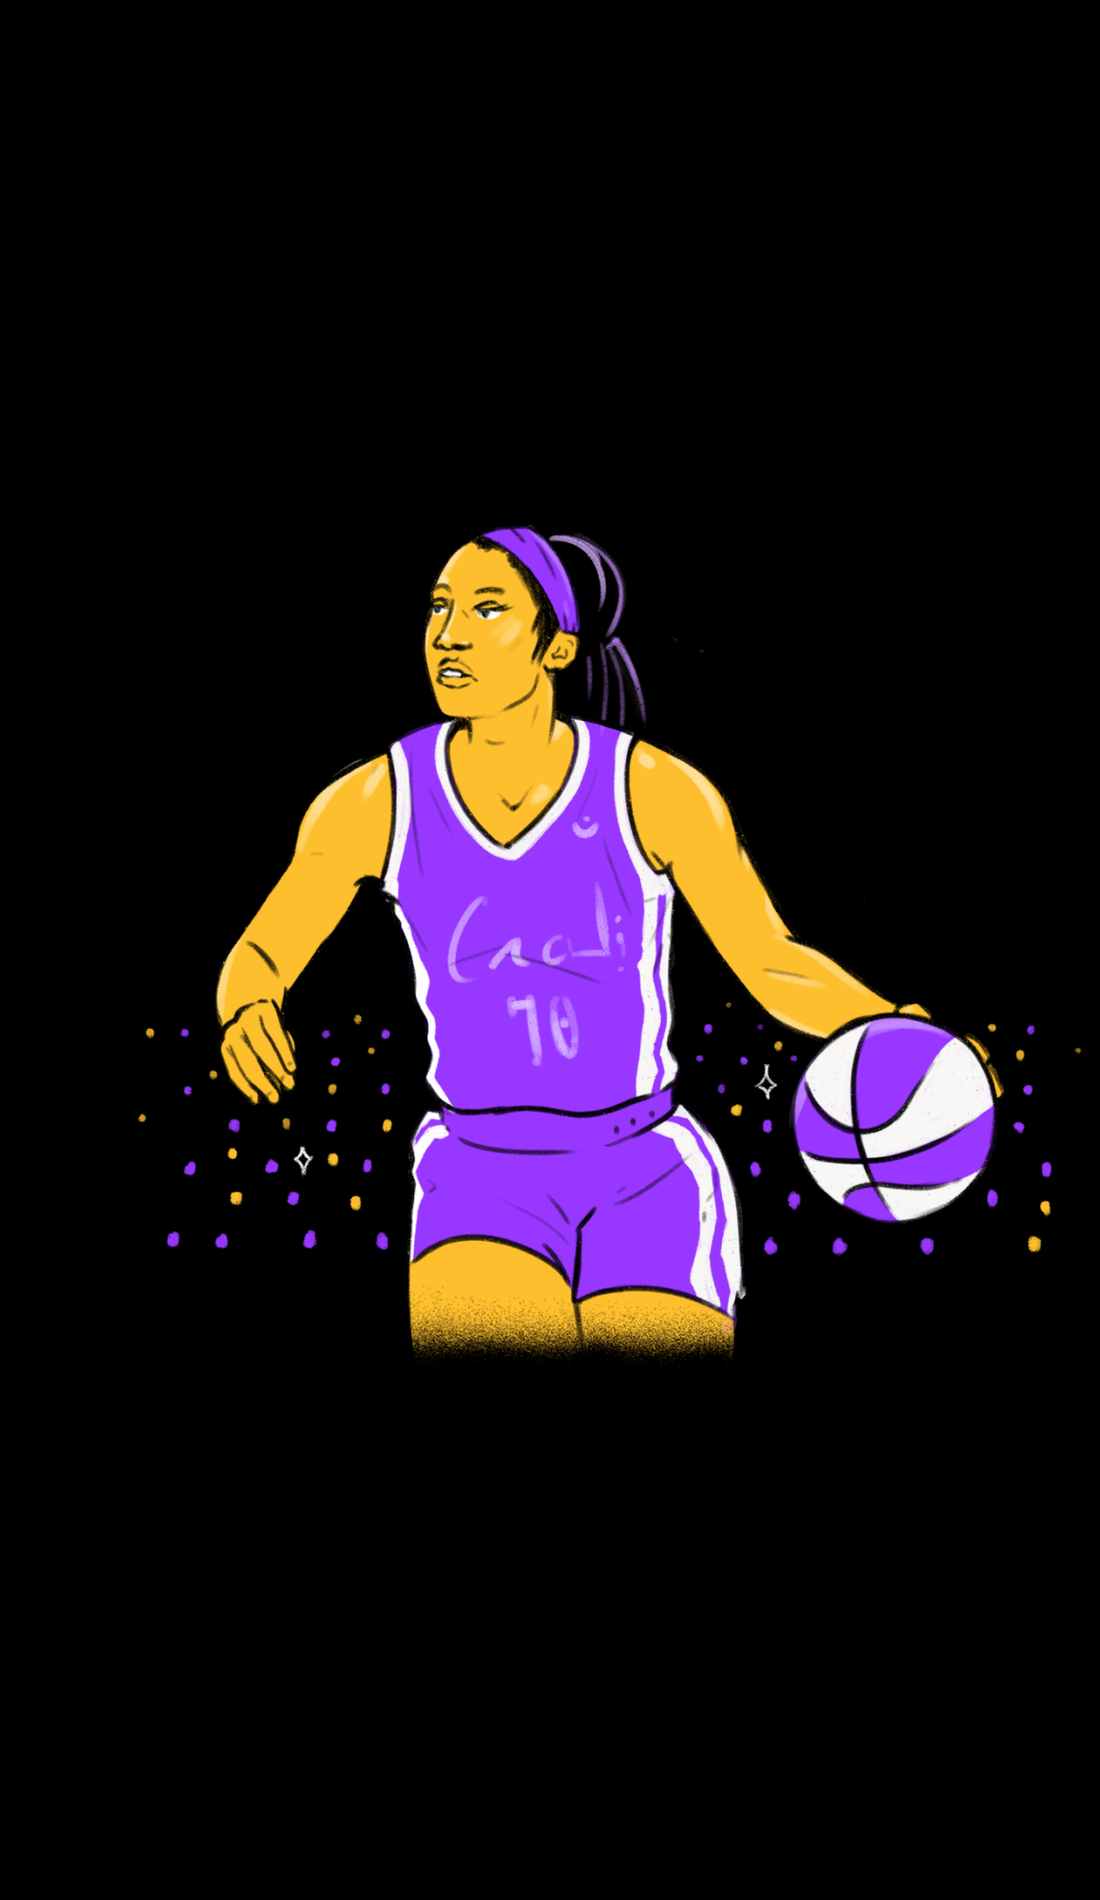 A Basketball Hall of Fame Women's Challenge live event